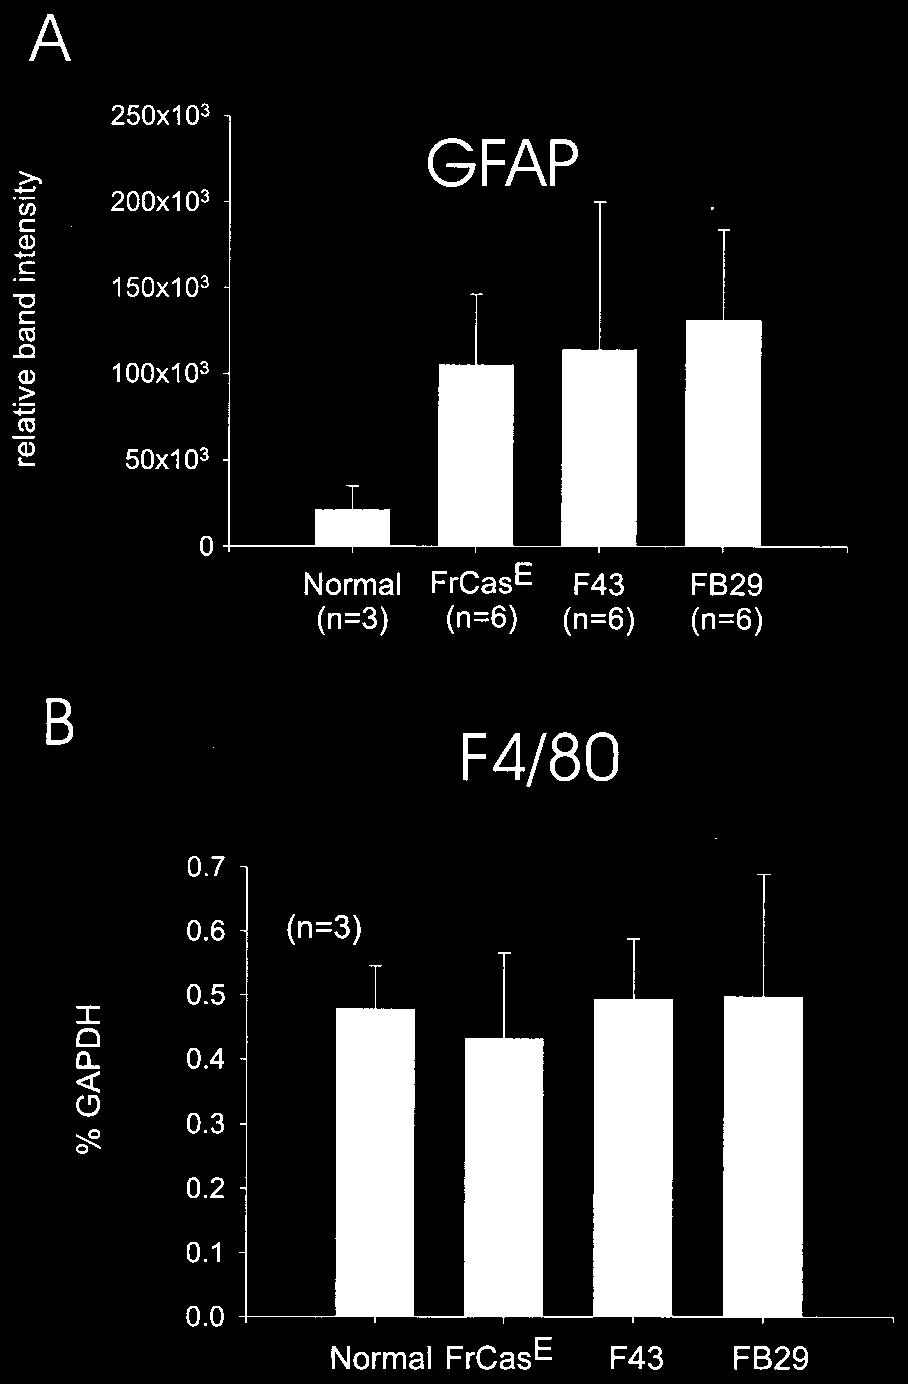 468 AŠKOVIĆ ET AL. J. VIROL. Despite the increased expression of GFAP, there was no evidence of upregulation of the microglia-specific marker F4/80 in any of the virus-infected groups (Fig. 3B).